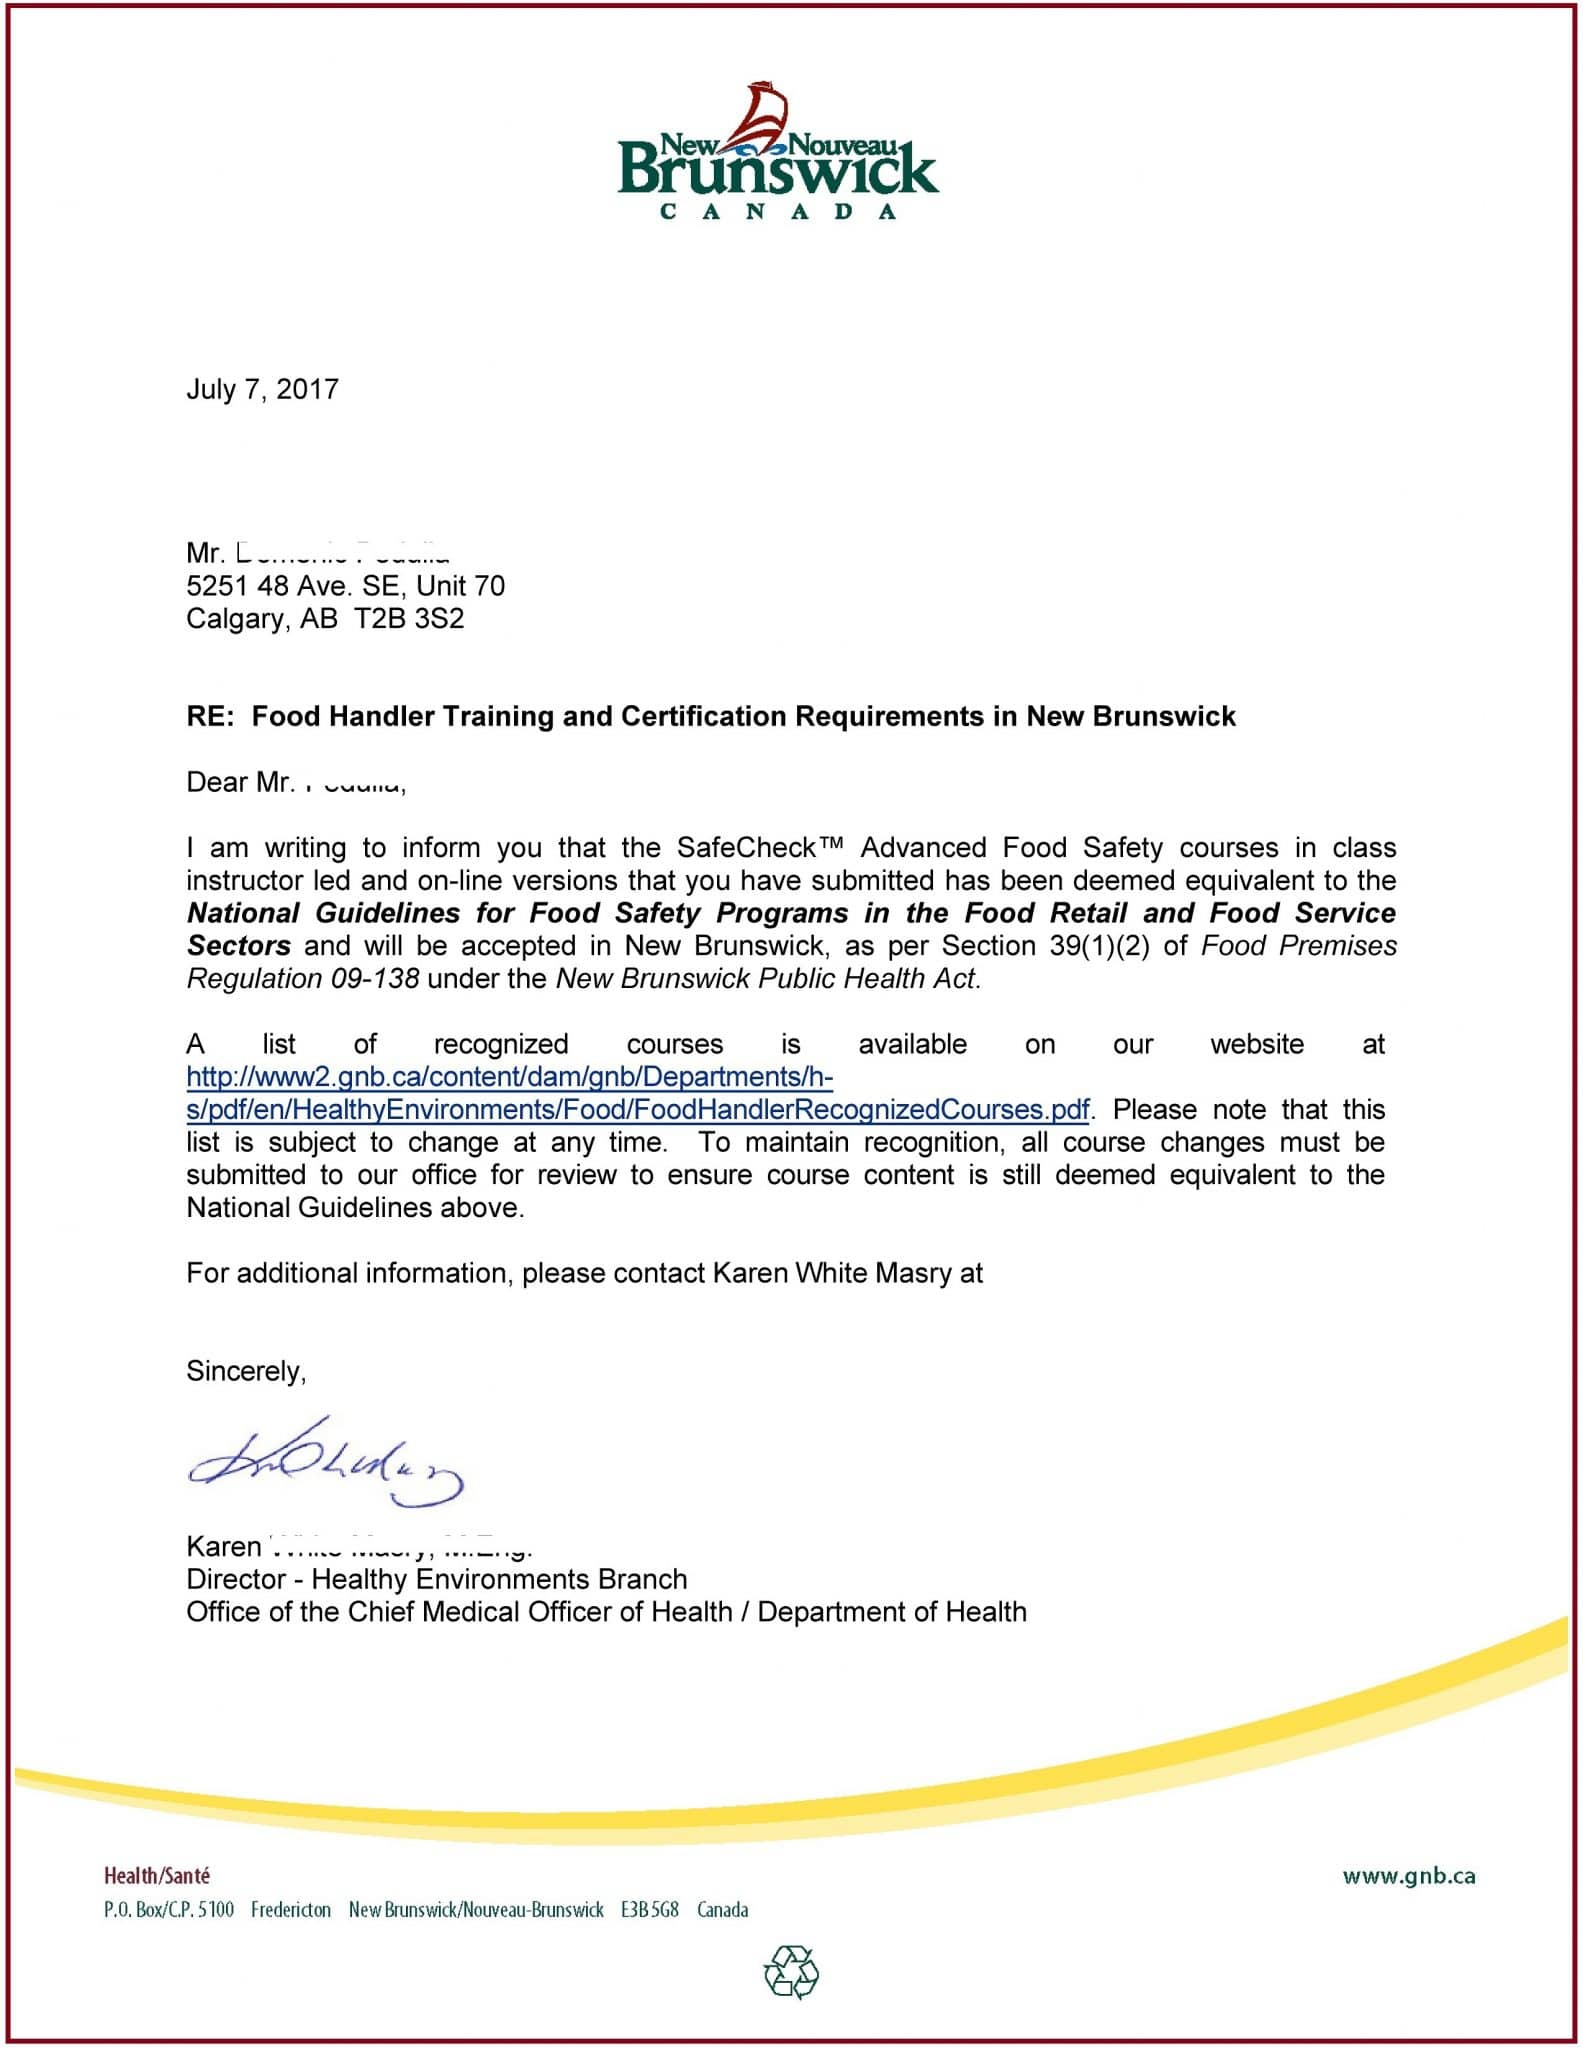 New Brunswick - Food Safety Course Approval A